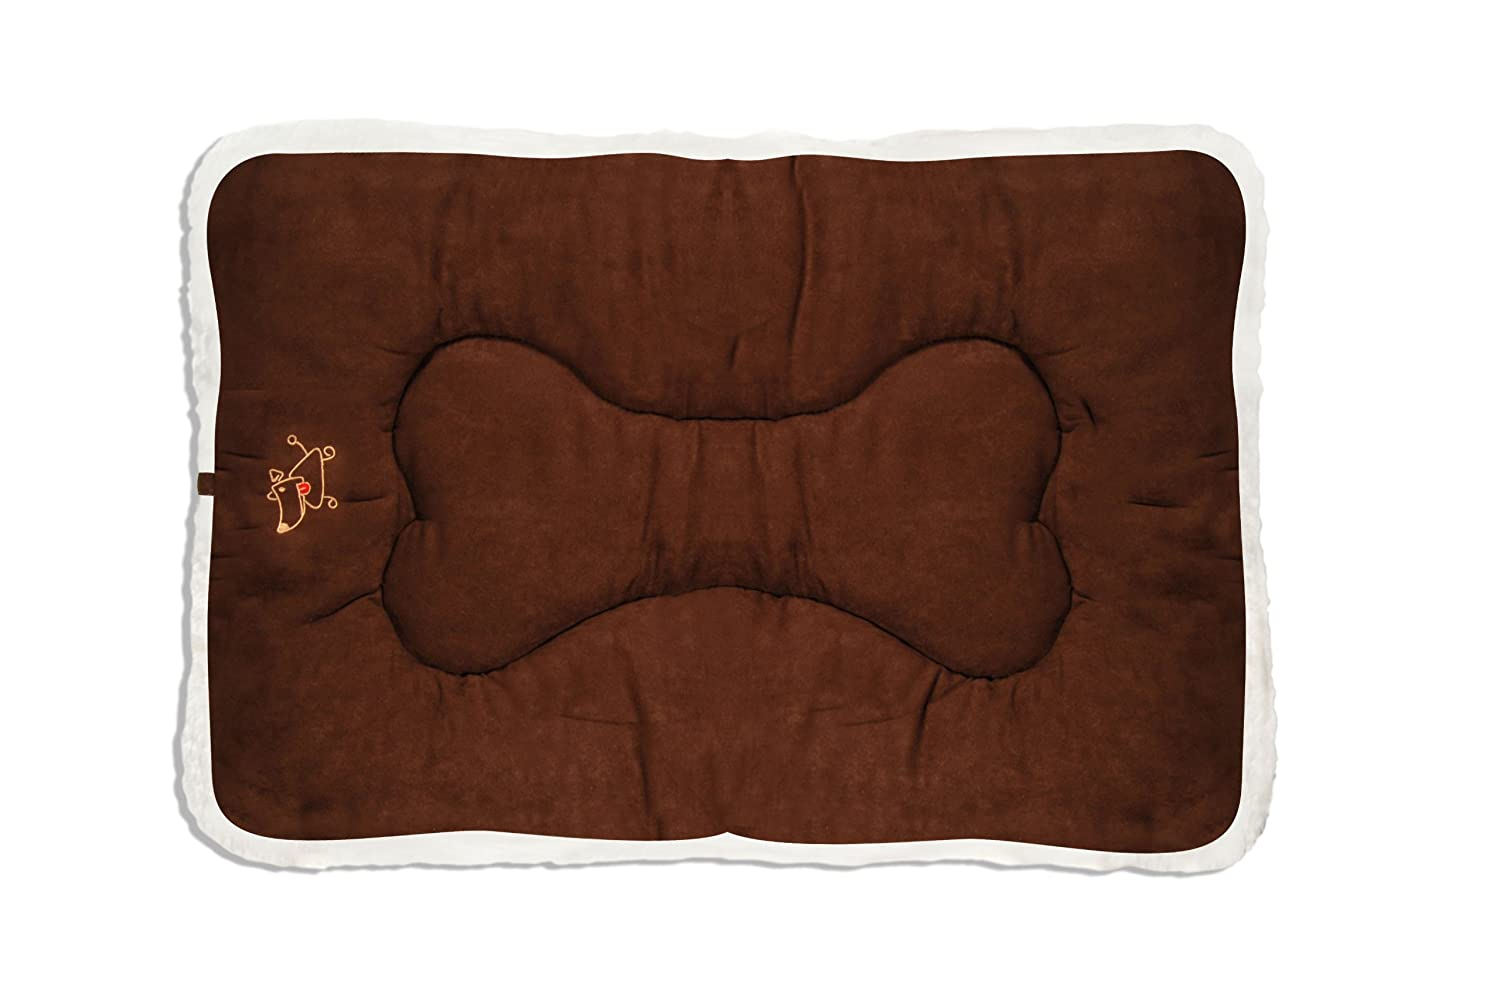 Dark Brown X-Small Dark Brown X-Small Best Pet Supplies Double-Sided Crate Mat, X-Small, Dark Brown Suede